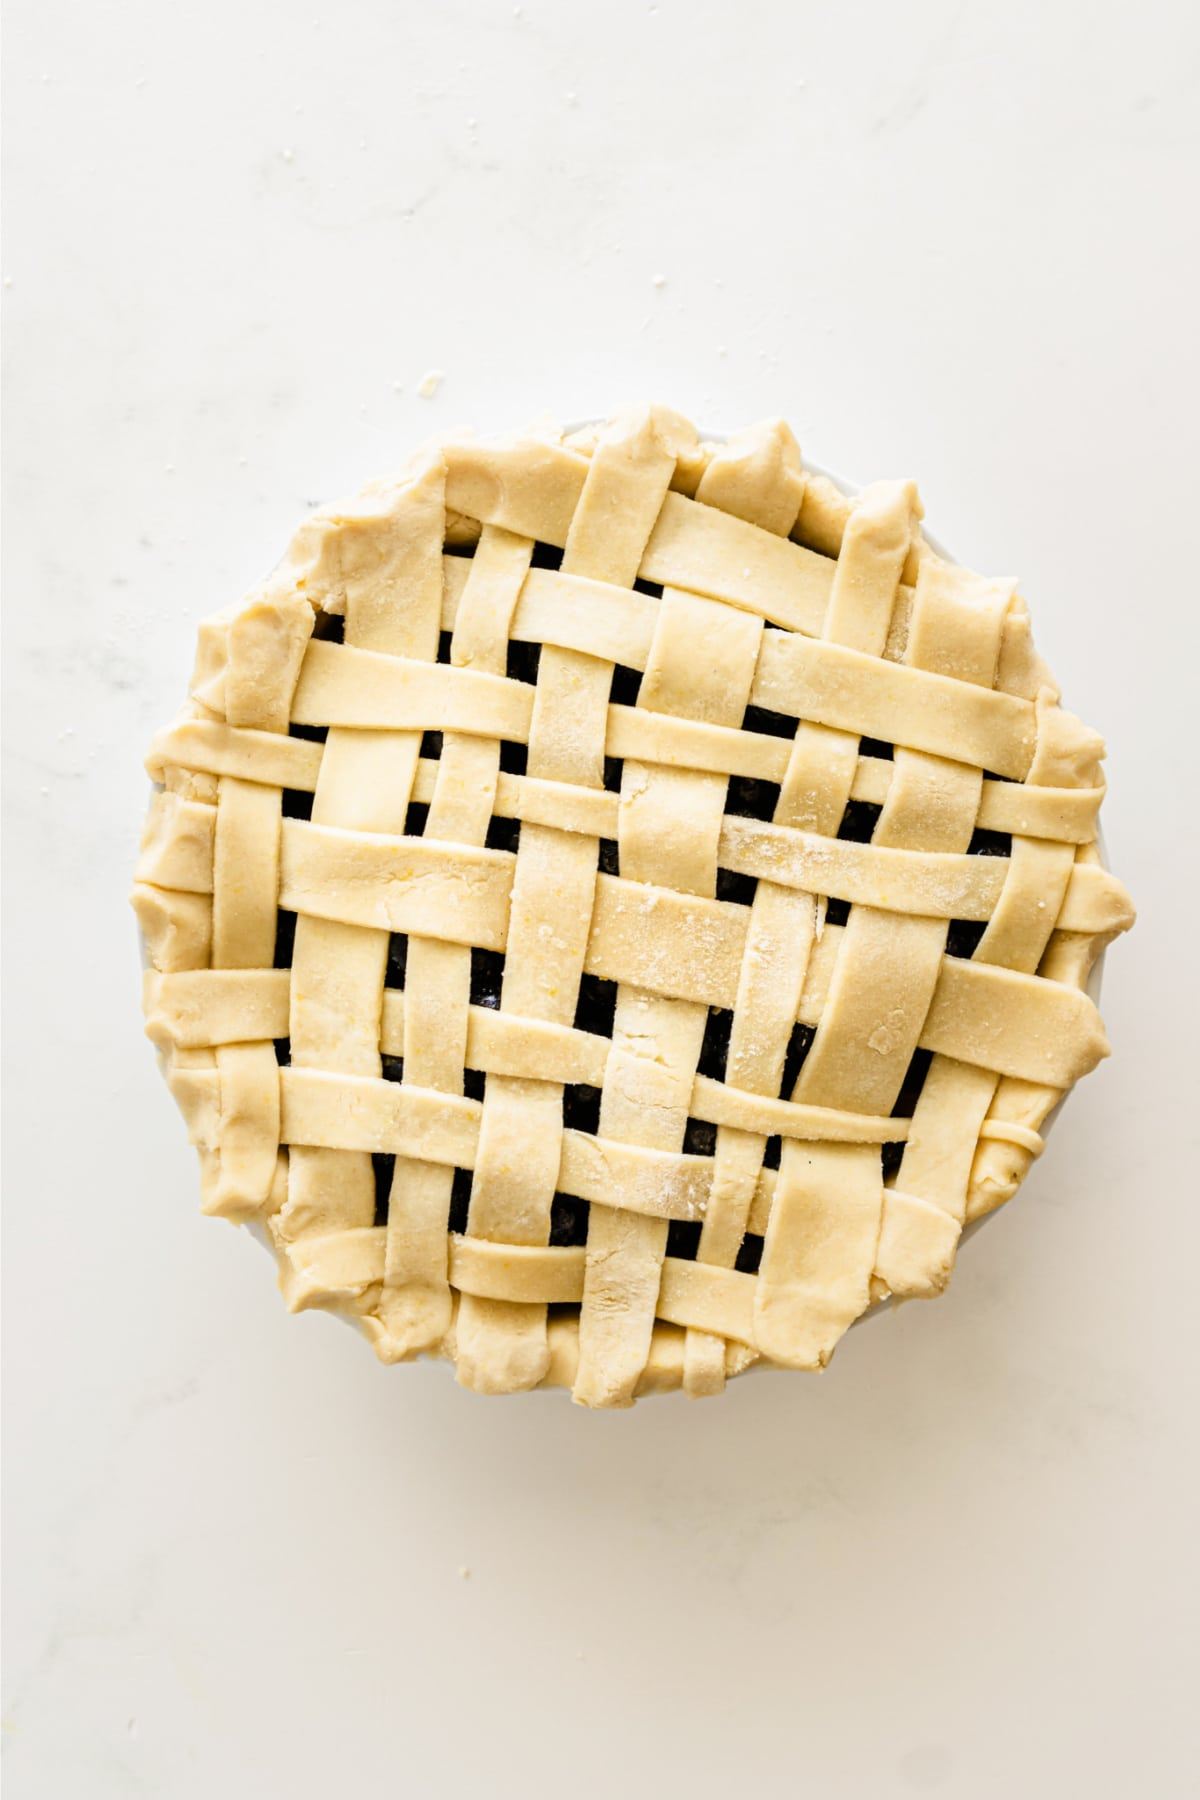 Uncooked blueberry pie with a lattice crust